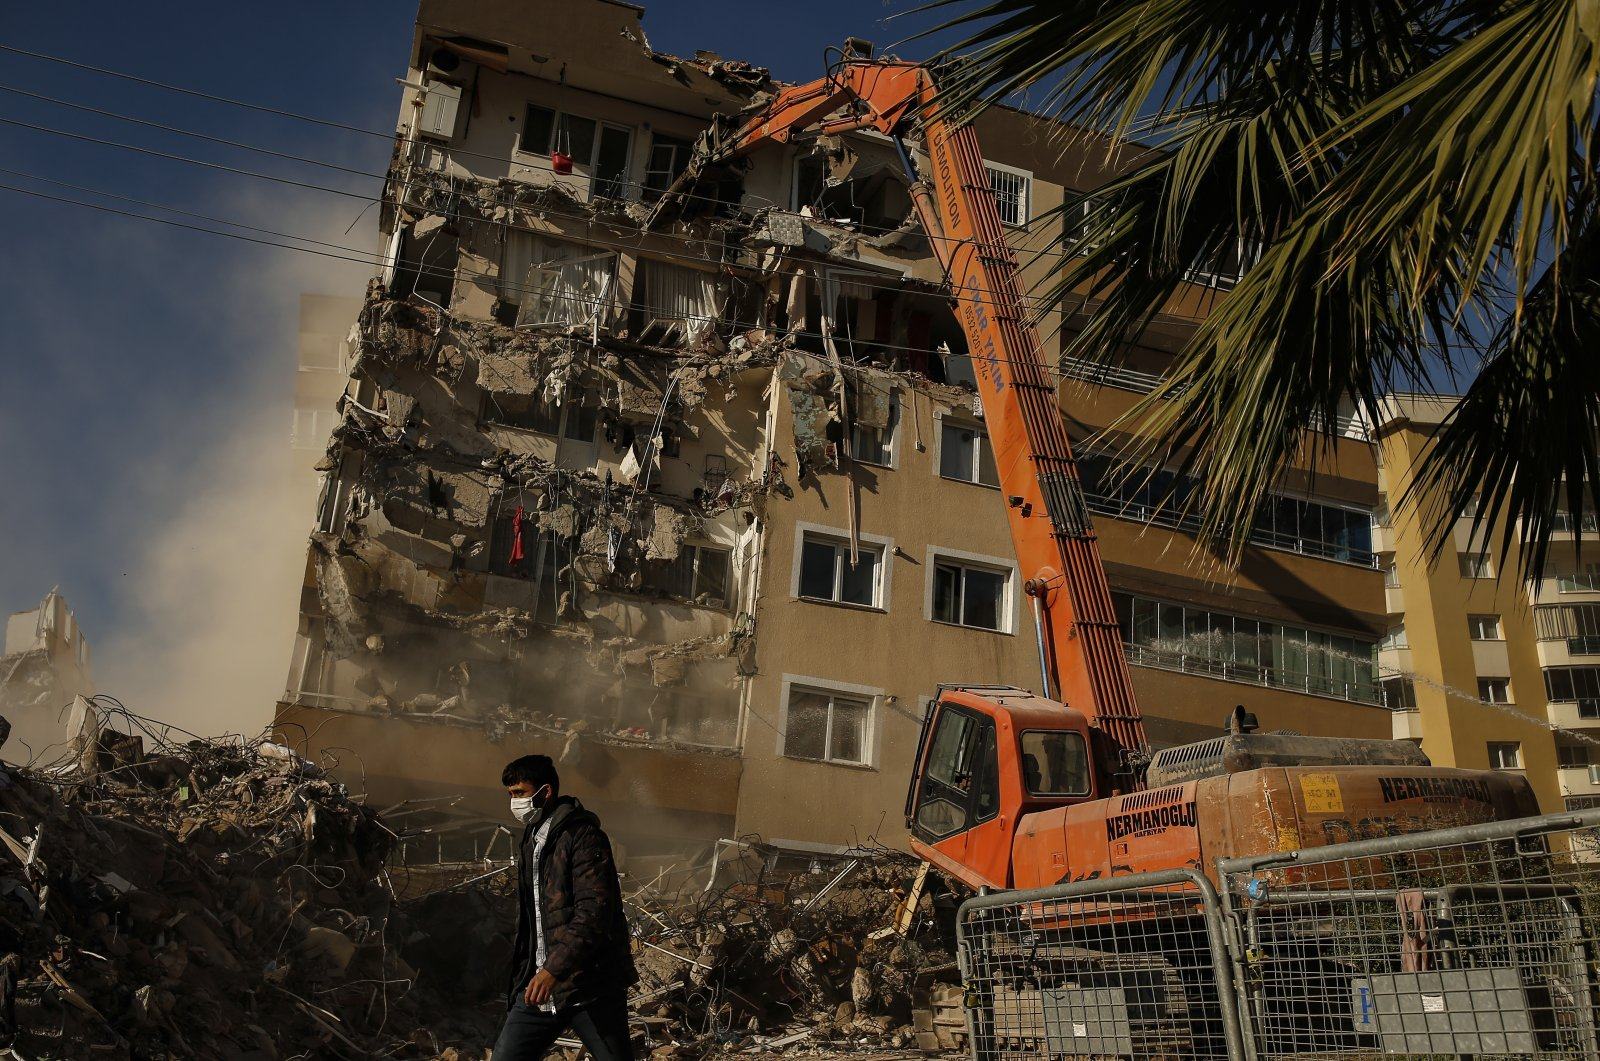 Construction workers demolish a building that was damaged during the Oct. 30 earthquake in Izmir, Turkey, Nov. 4, 2020. (AP Photo)